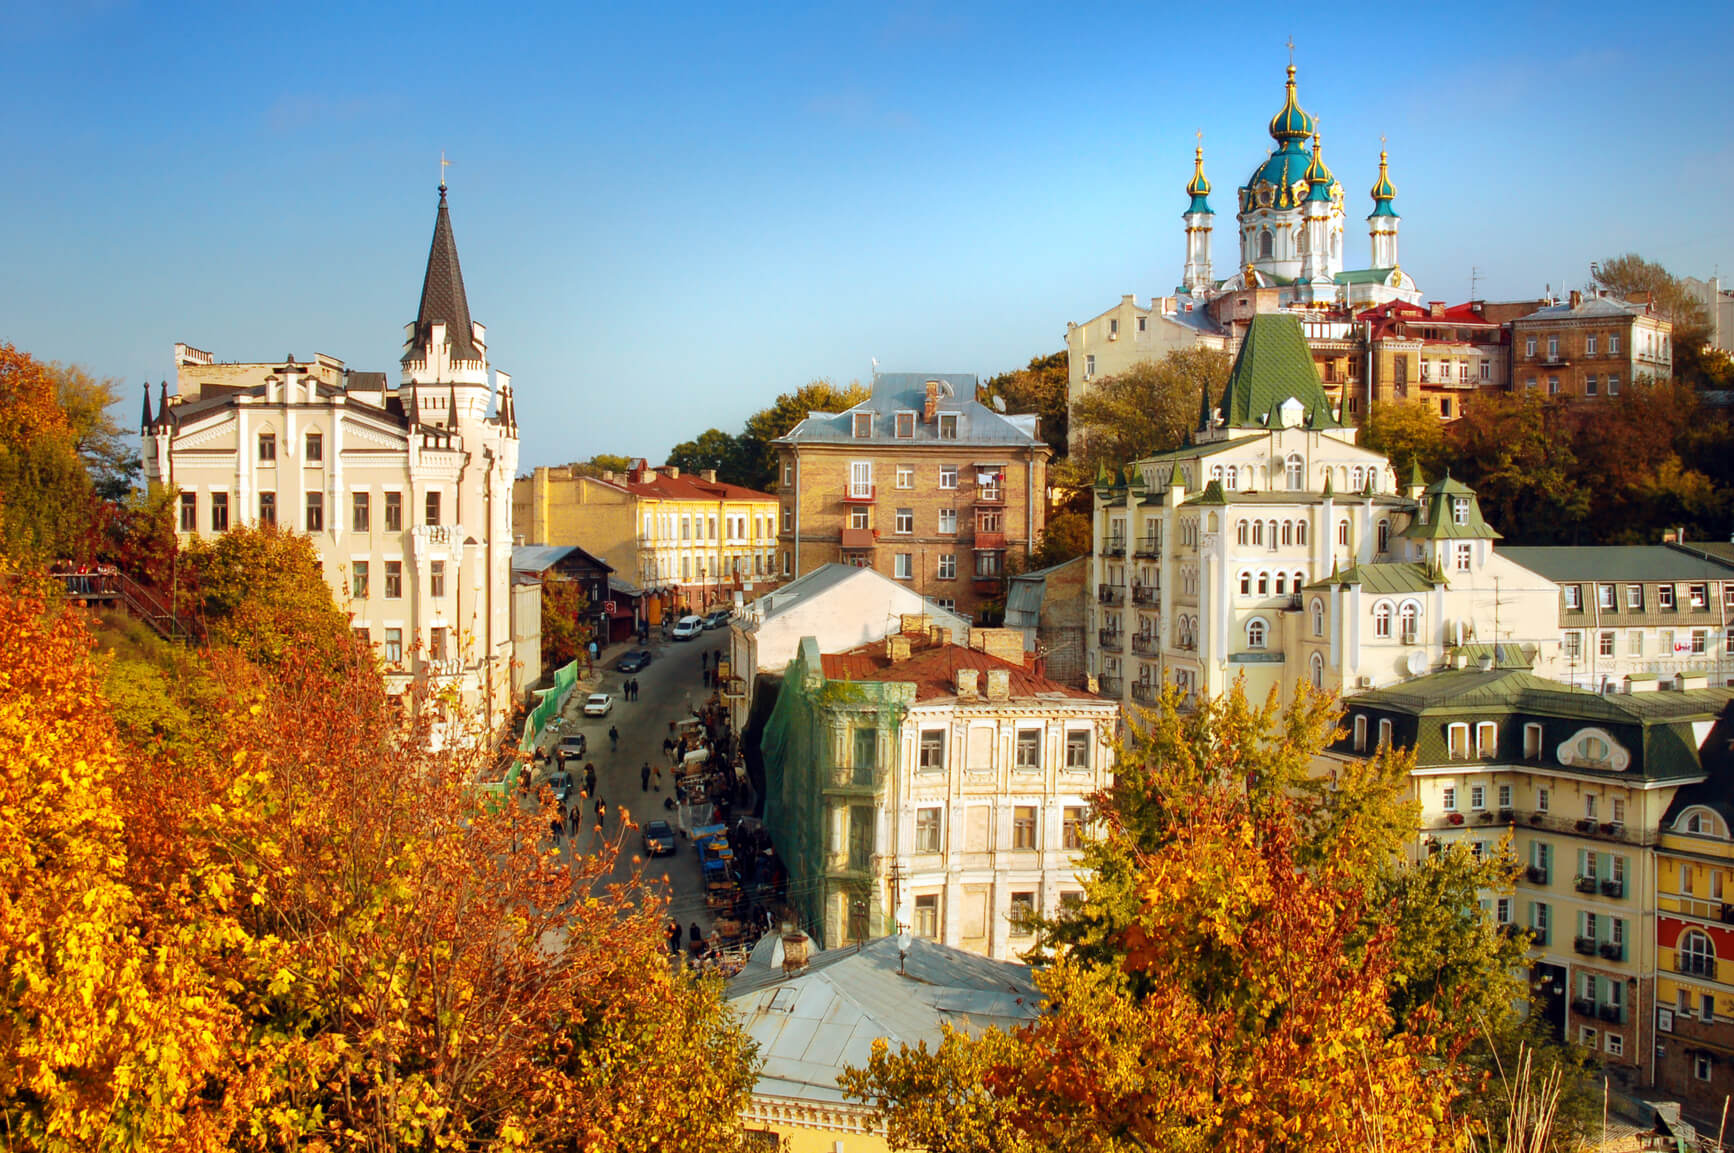 SUMMER: Non-stop from Vilnius, Lithuania to Kiev, Ukraine (& vice versa) for only €20 roundtrip (Jul dates)